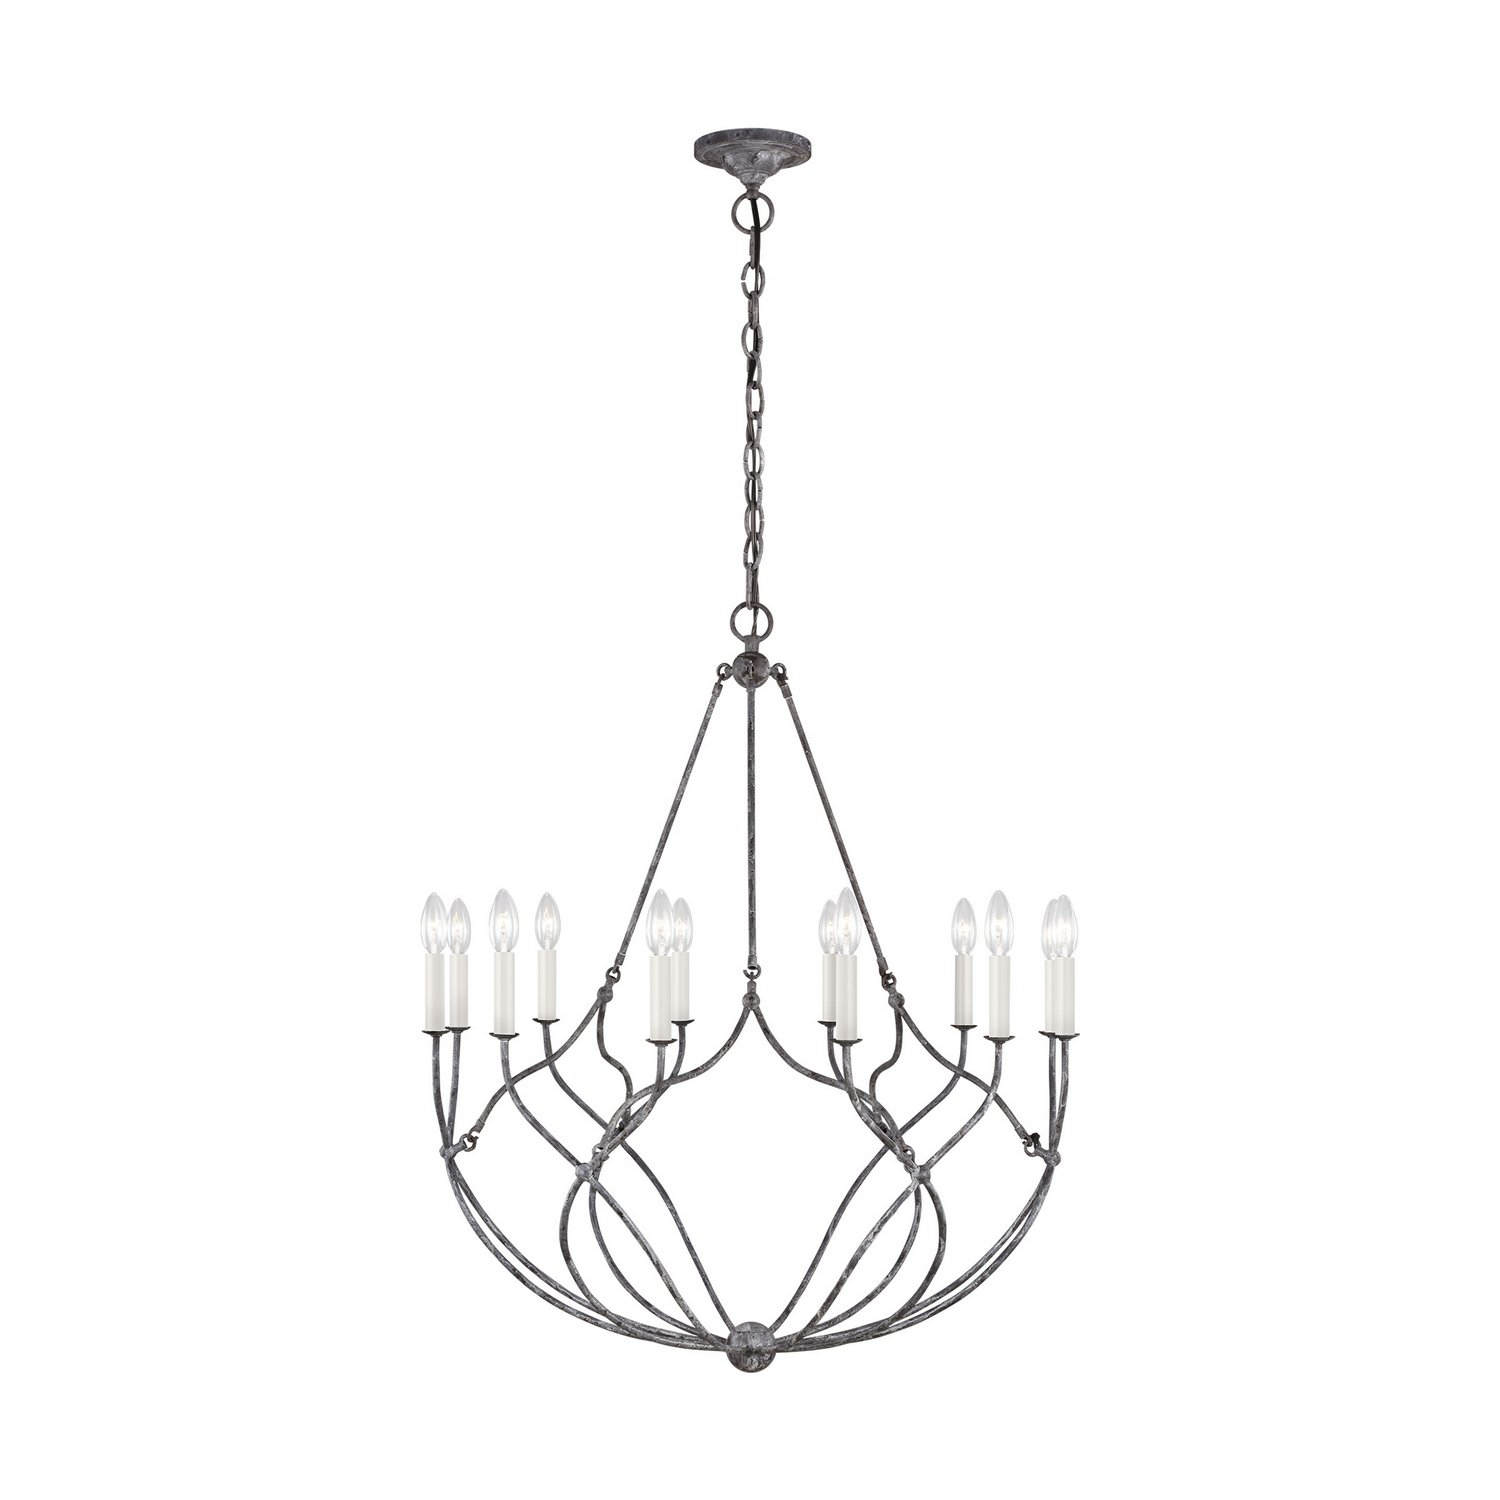 12 Light Chandelier from the Richmond collection by Feiss CC11212WGV